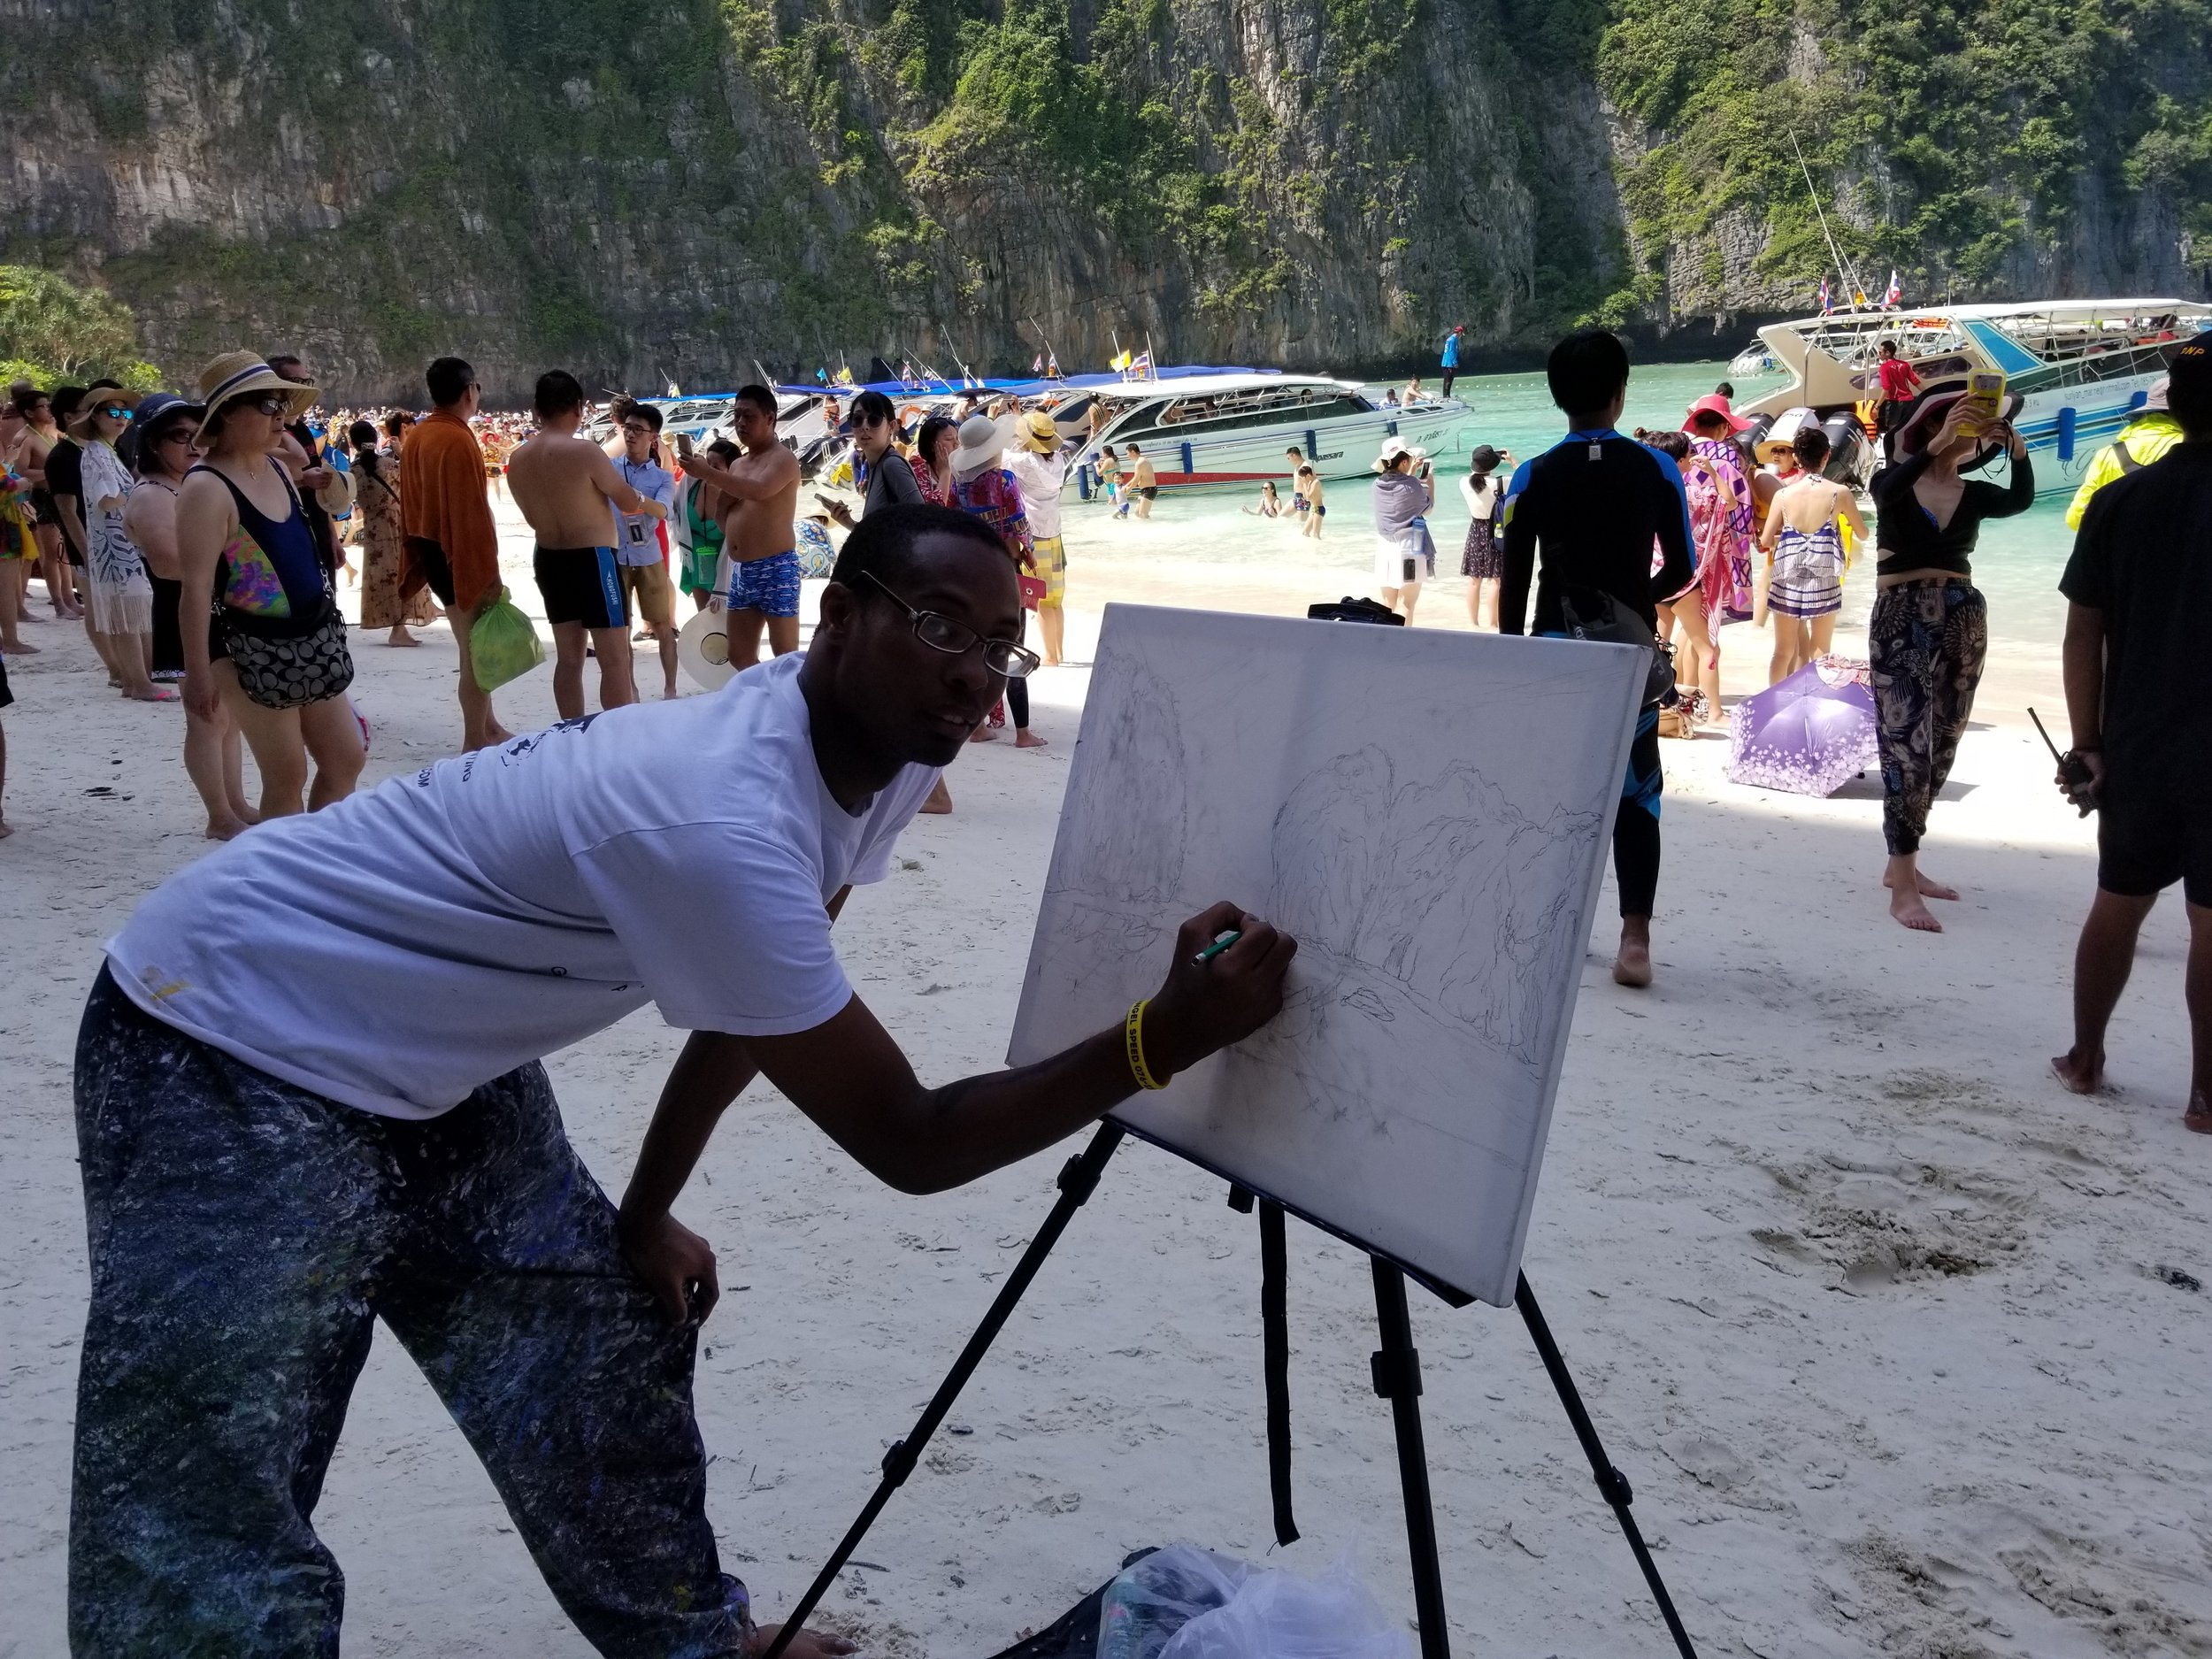 Me sketching out my painting of the Maya Beach Phi Phi Island on a canvas.